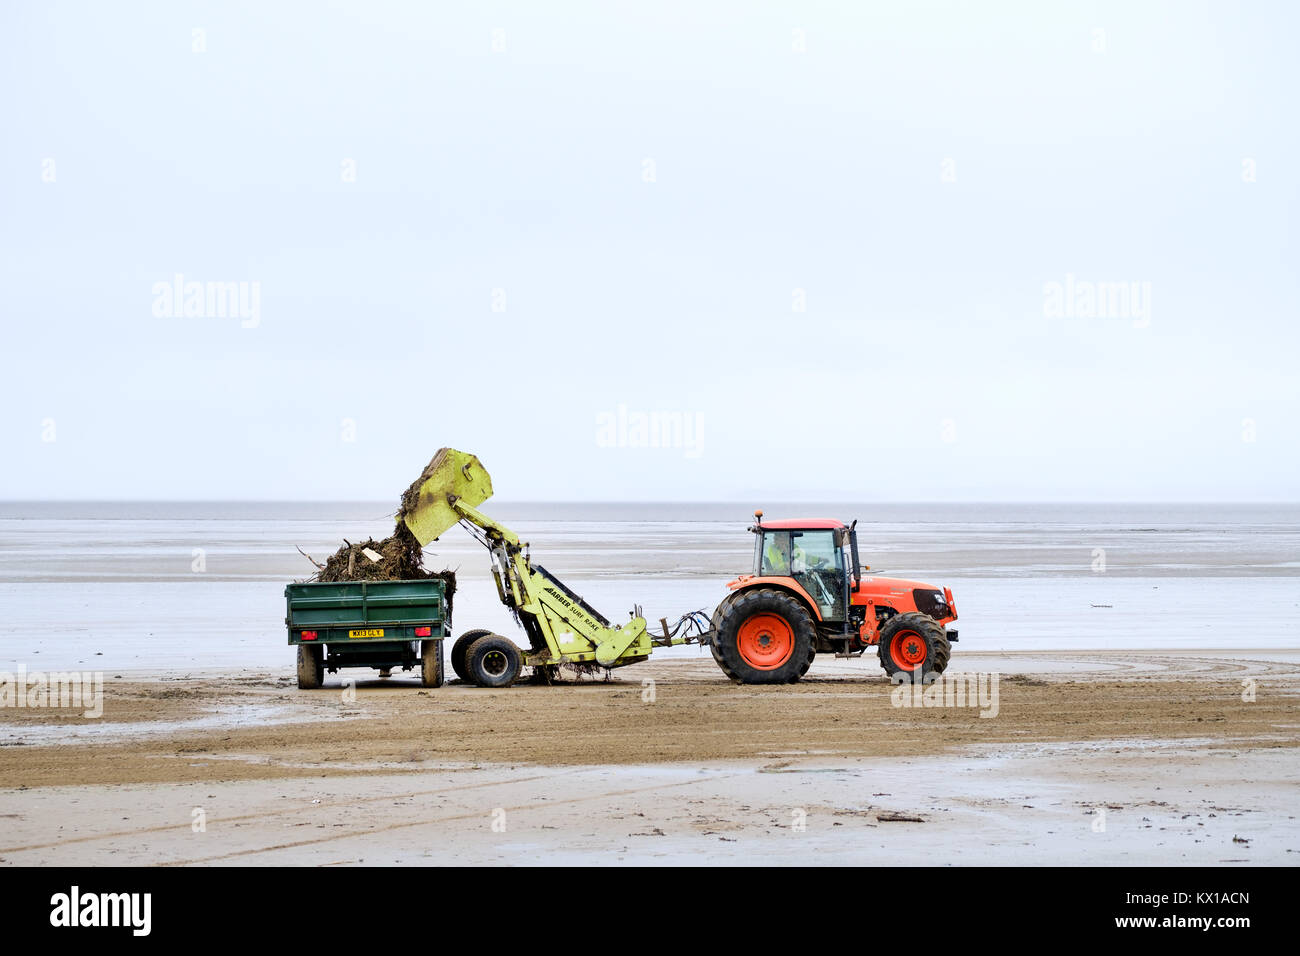 A local authority tractor is used to clear debris and discarded or washed up rubbish polluting the beach at Weston - Stock Image